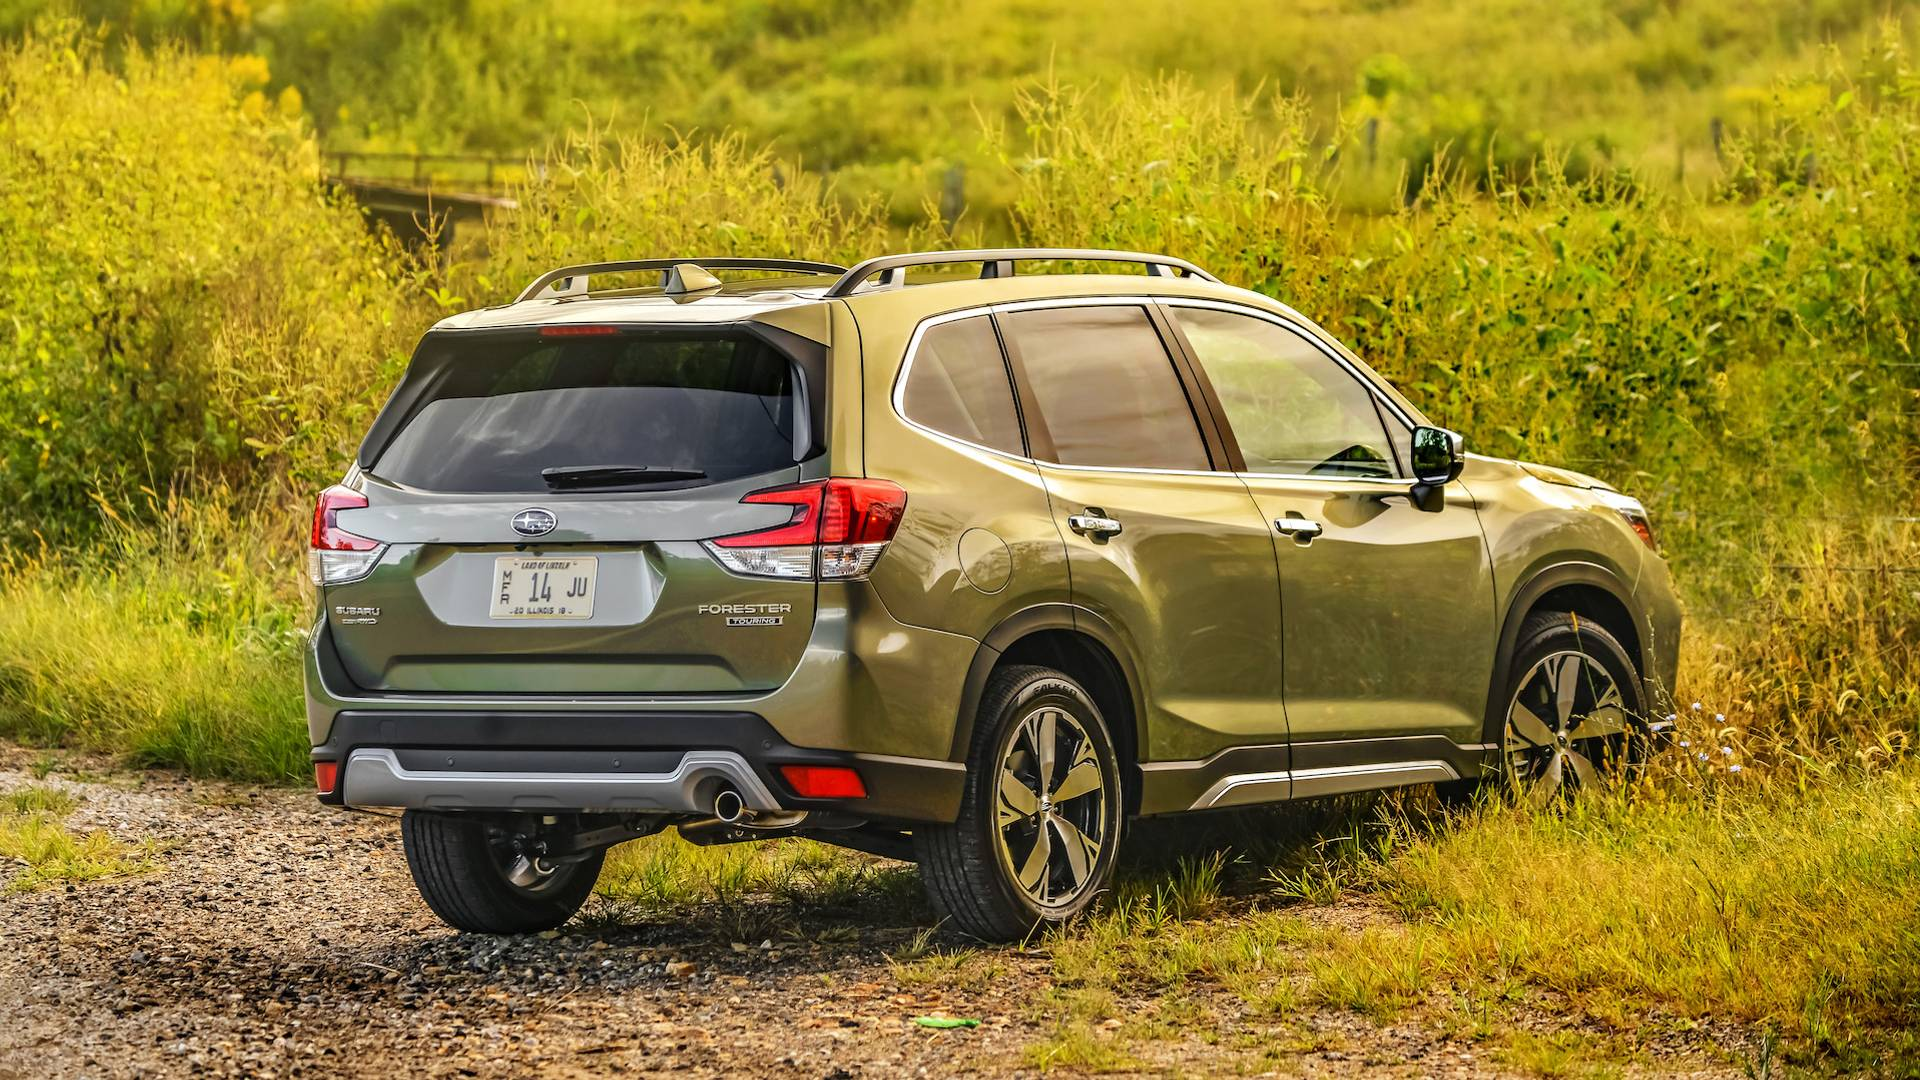 2019 Subaru Forester First Drive: Same Forest, New Trees